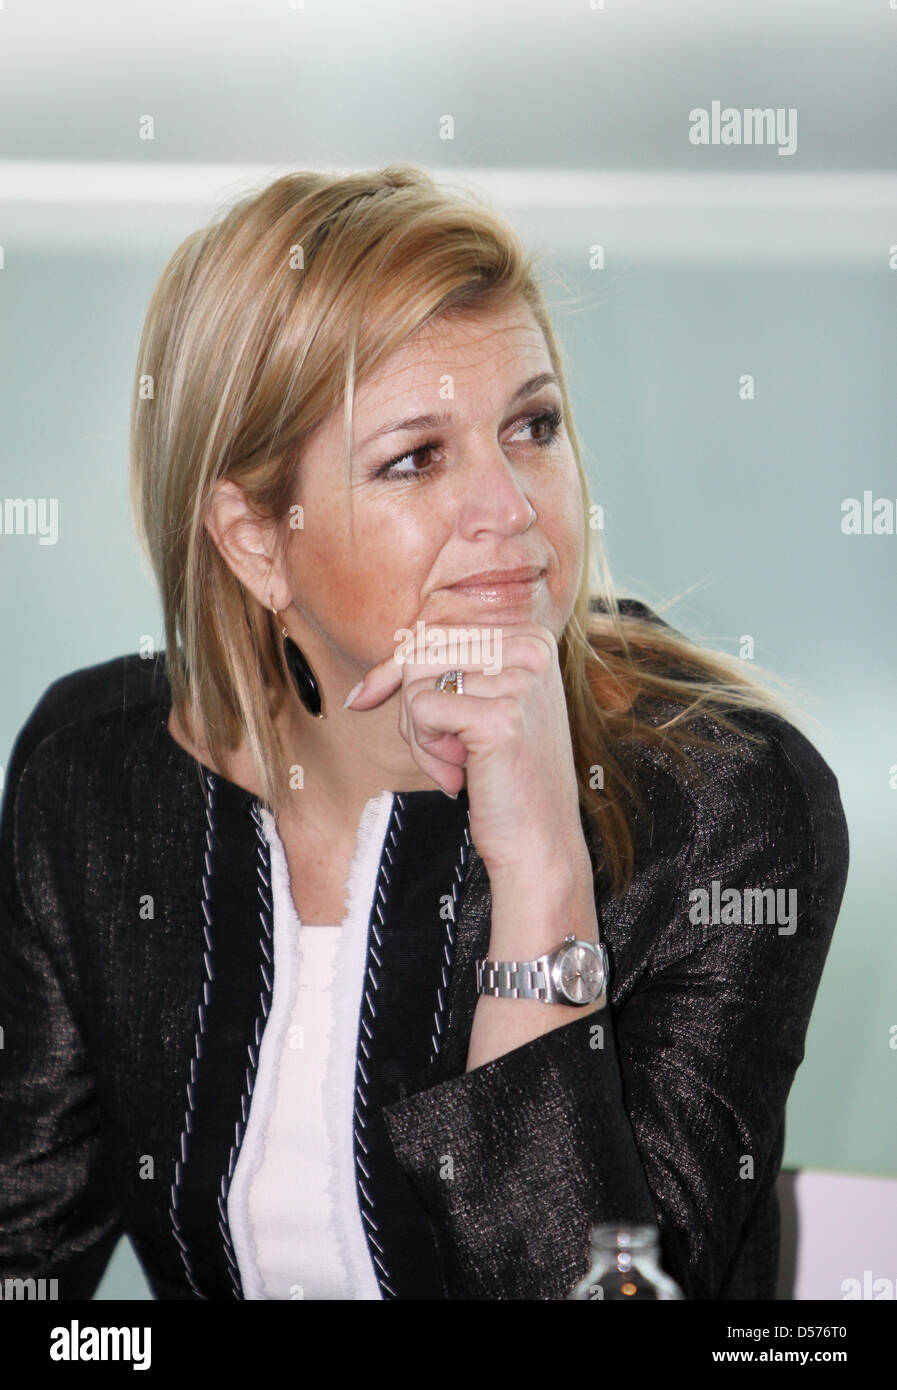 Princess Maxima of the Neterlands attends a brainstorming session with younger people about money at the Dutch Ministry - Stock Image